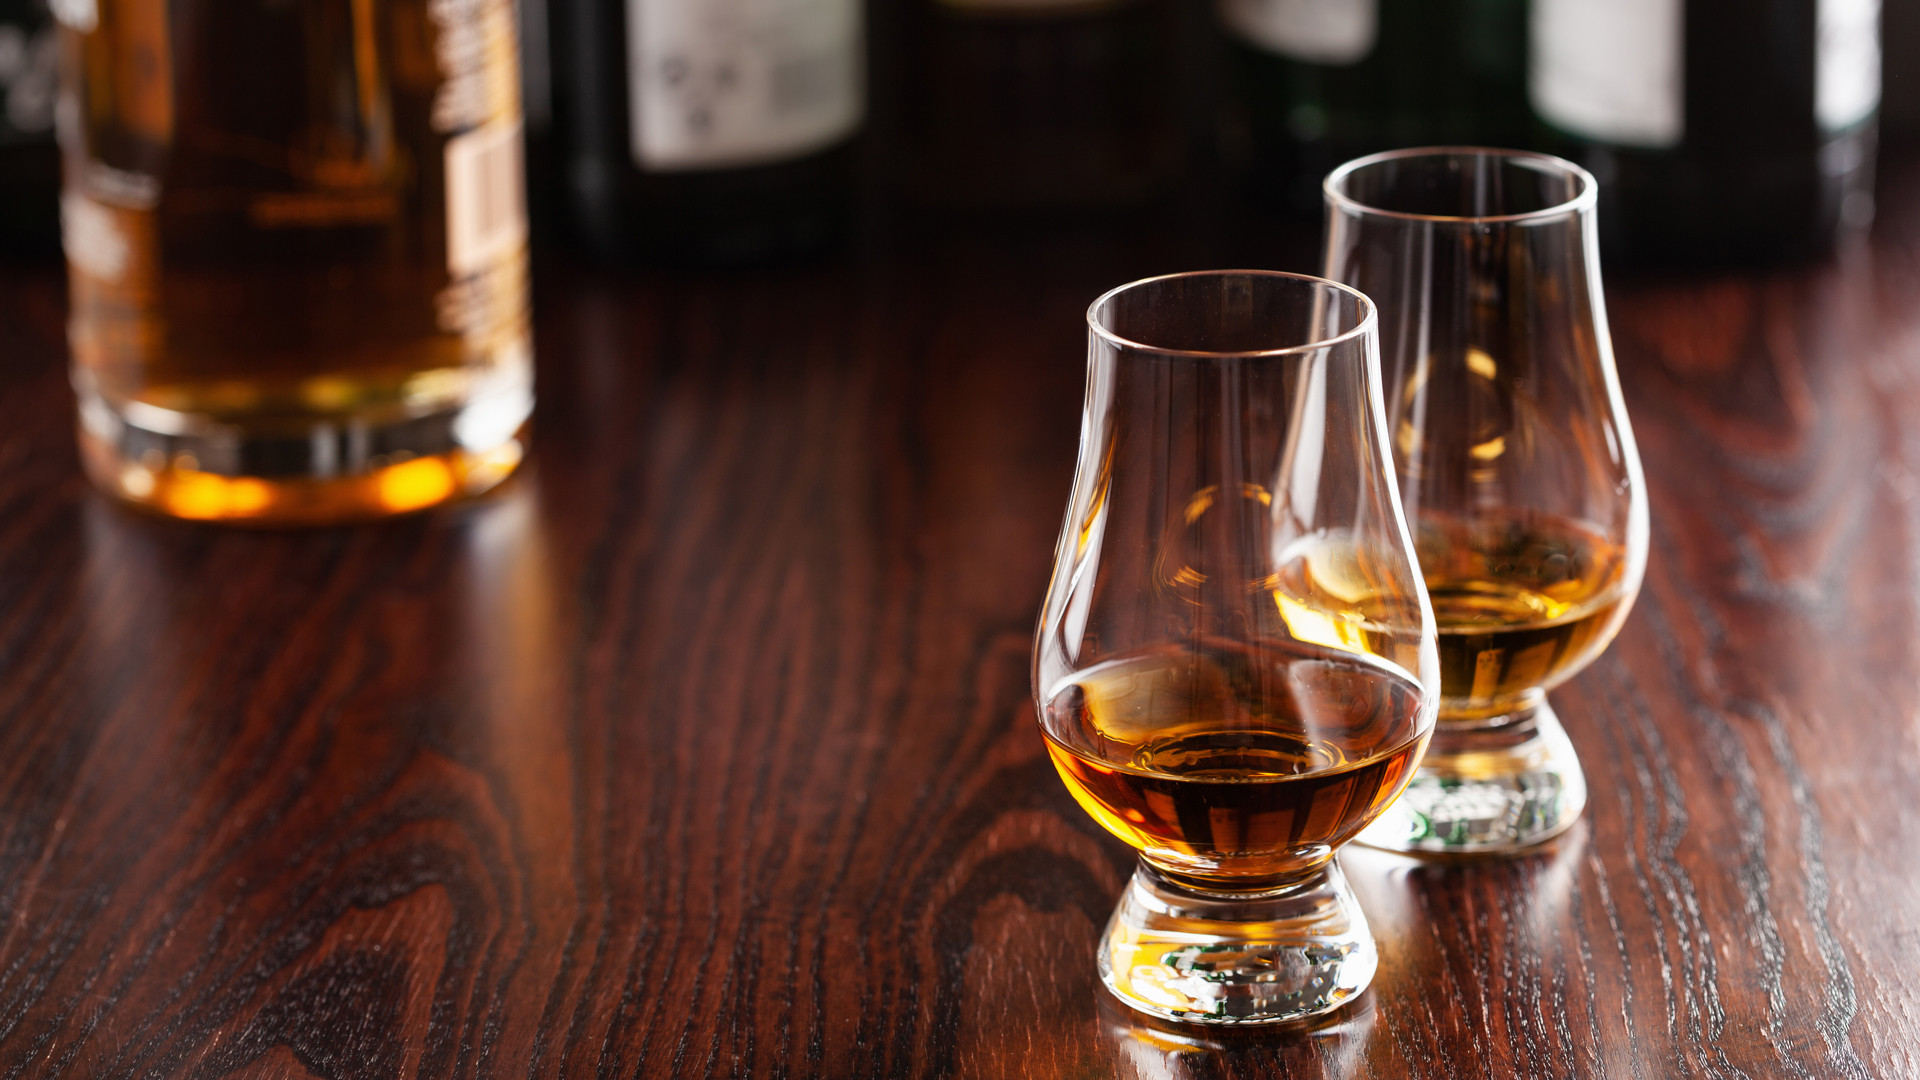 5 of the best whisky gifts at LCBO   Two glasses of whisky